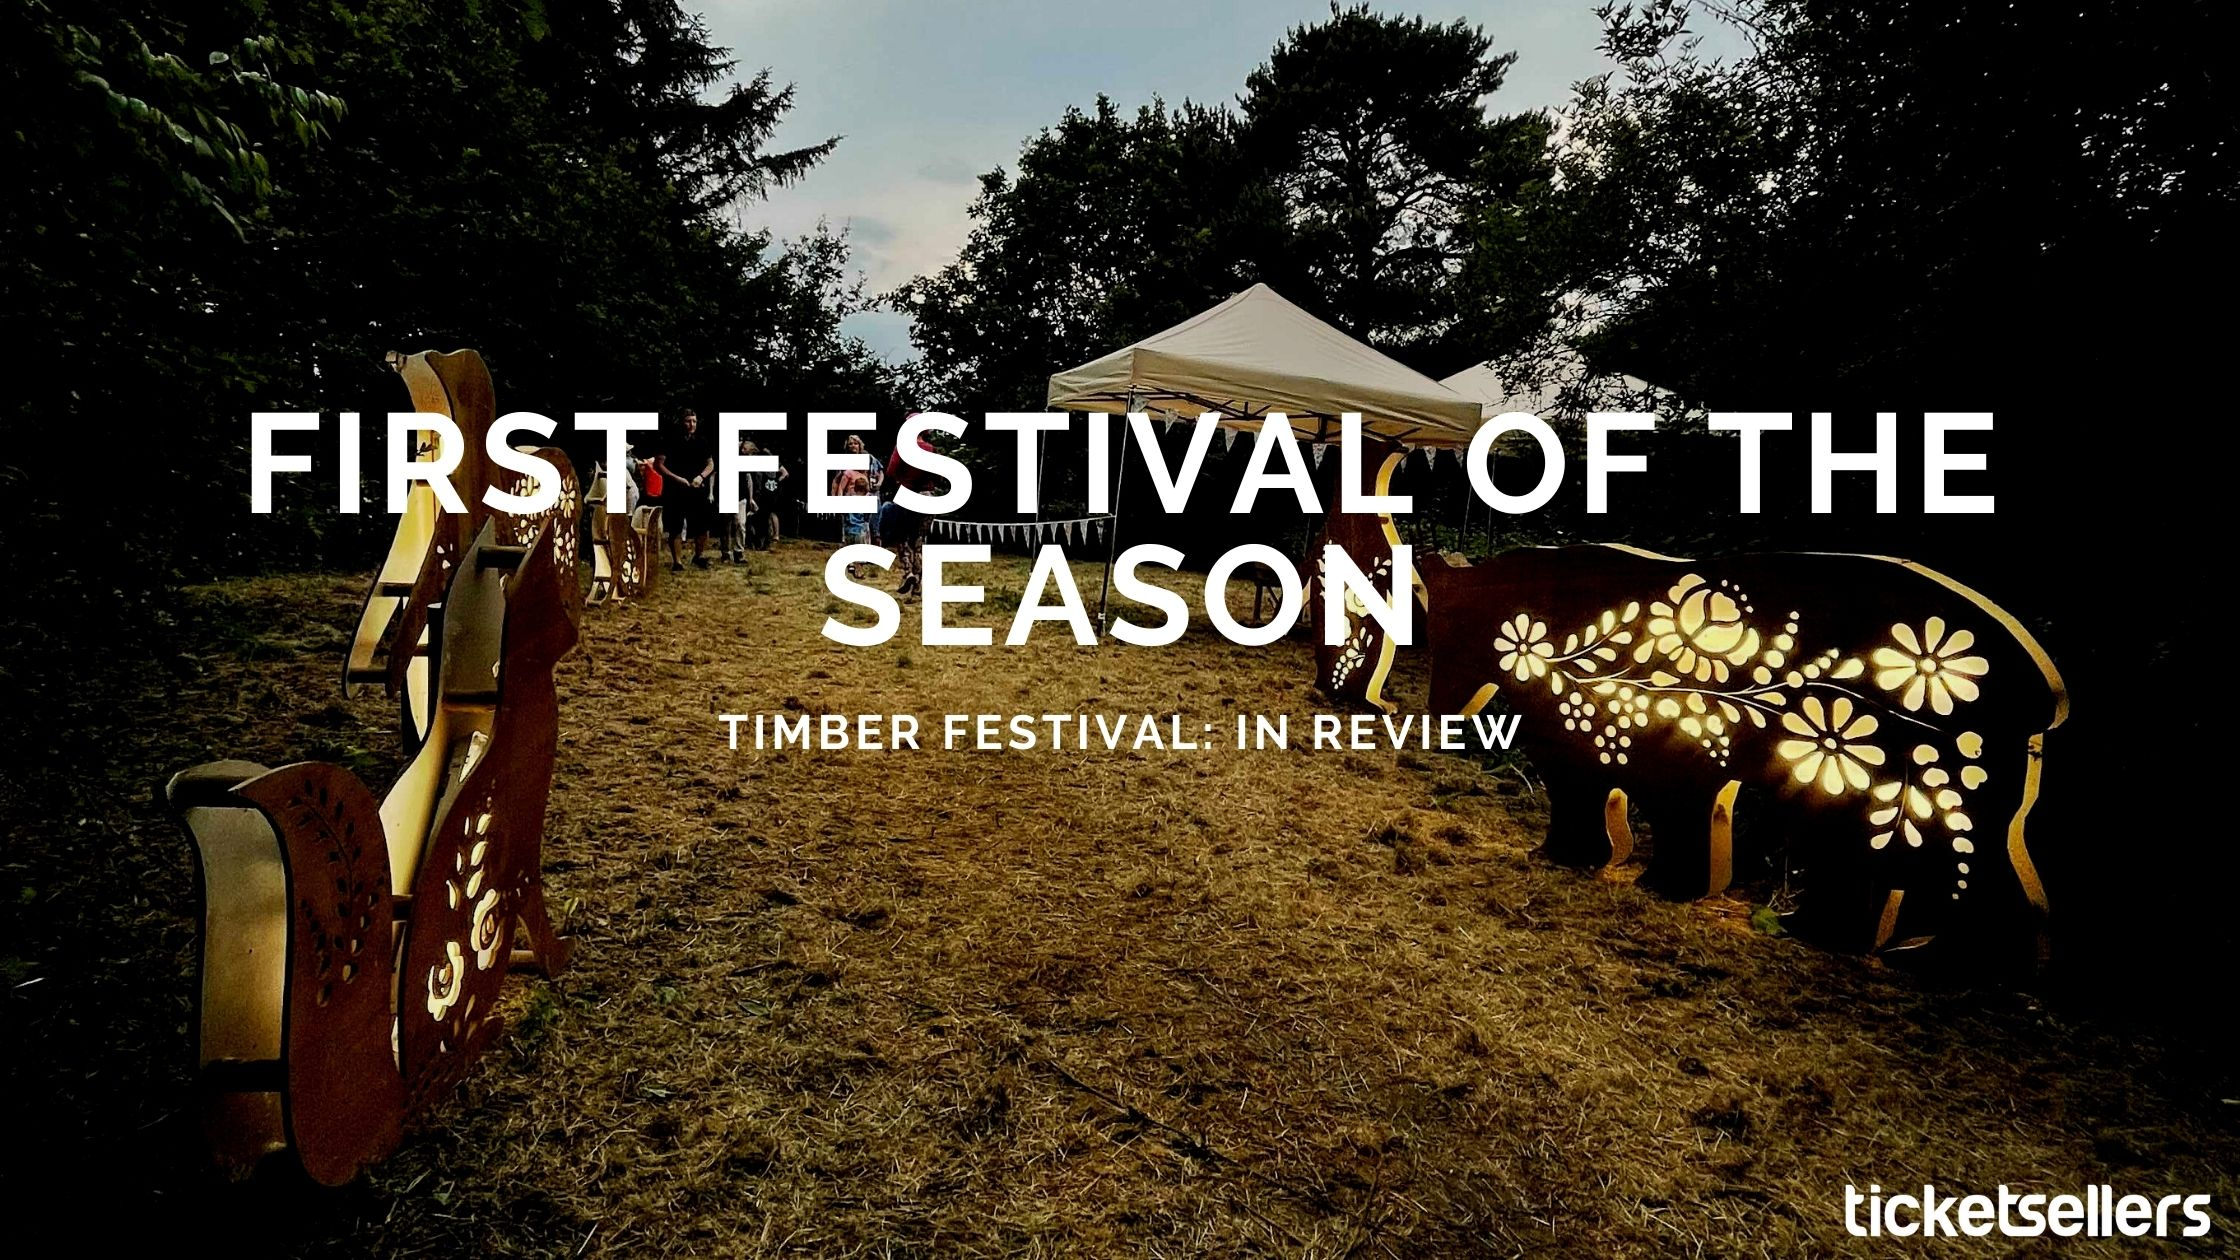 """Photo of walk-way at Timber Festival with light-up animal features, with a text overlay reading """"First festival of the season: Timber Festival in review"""""""